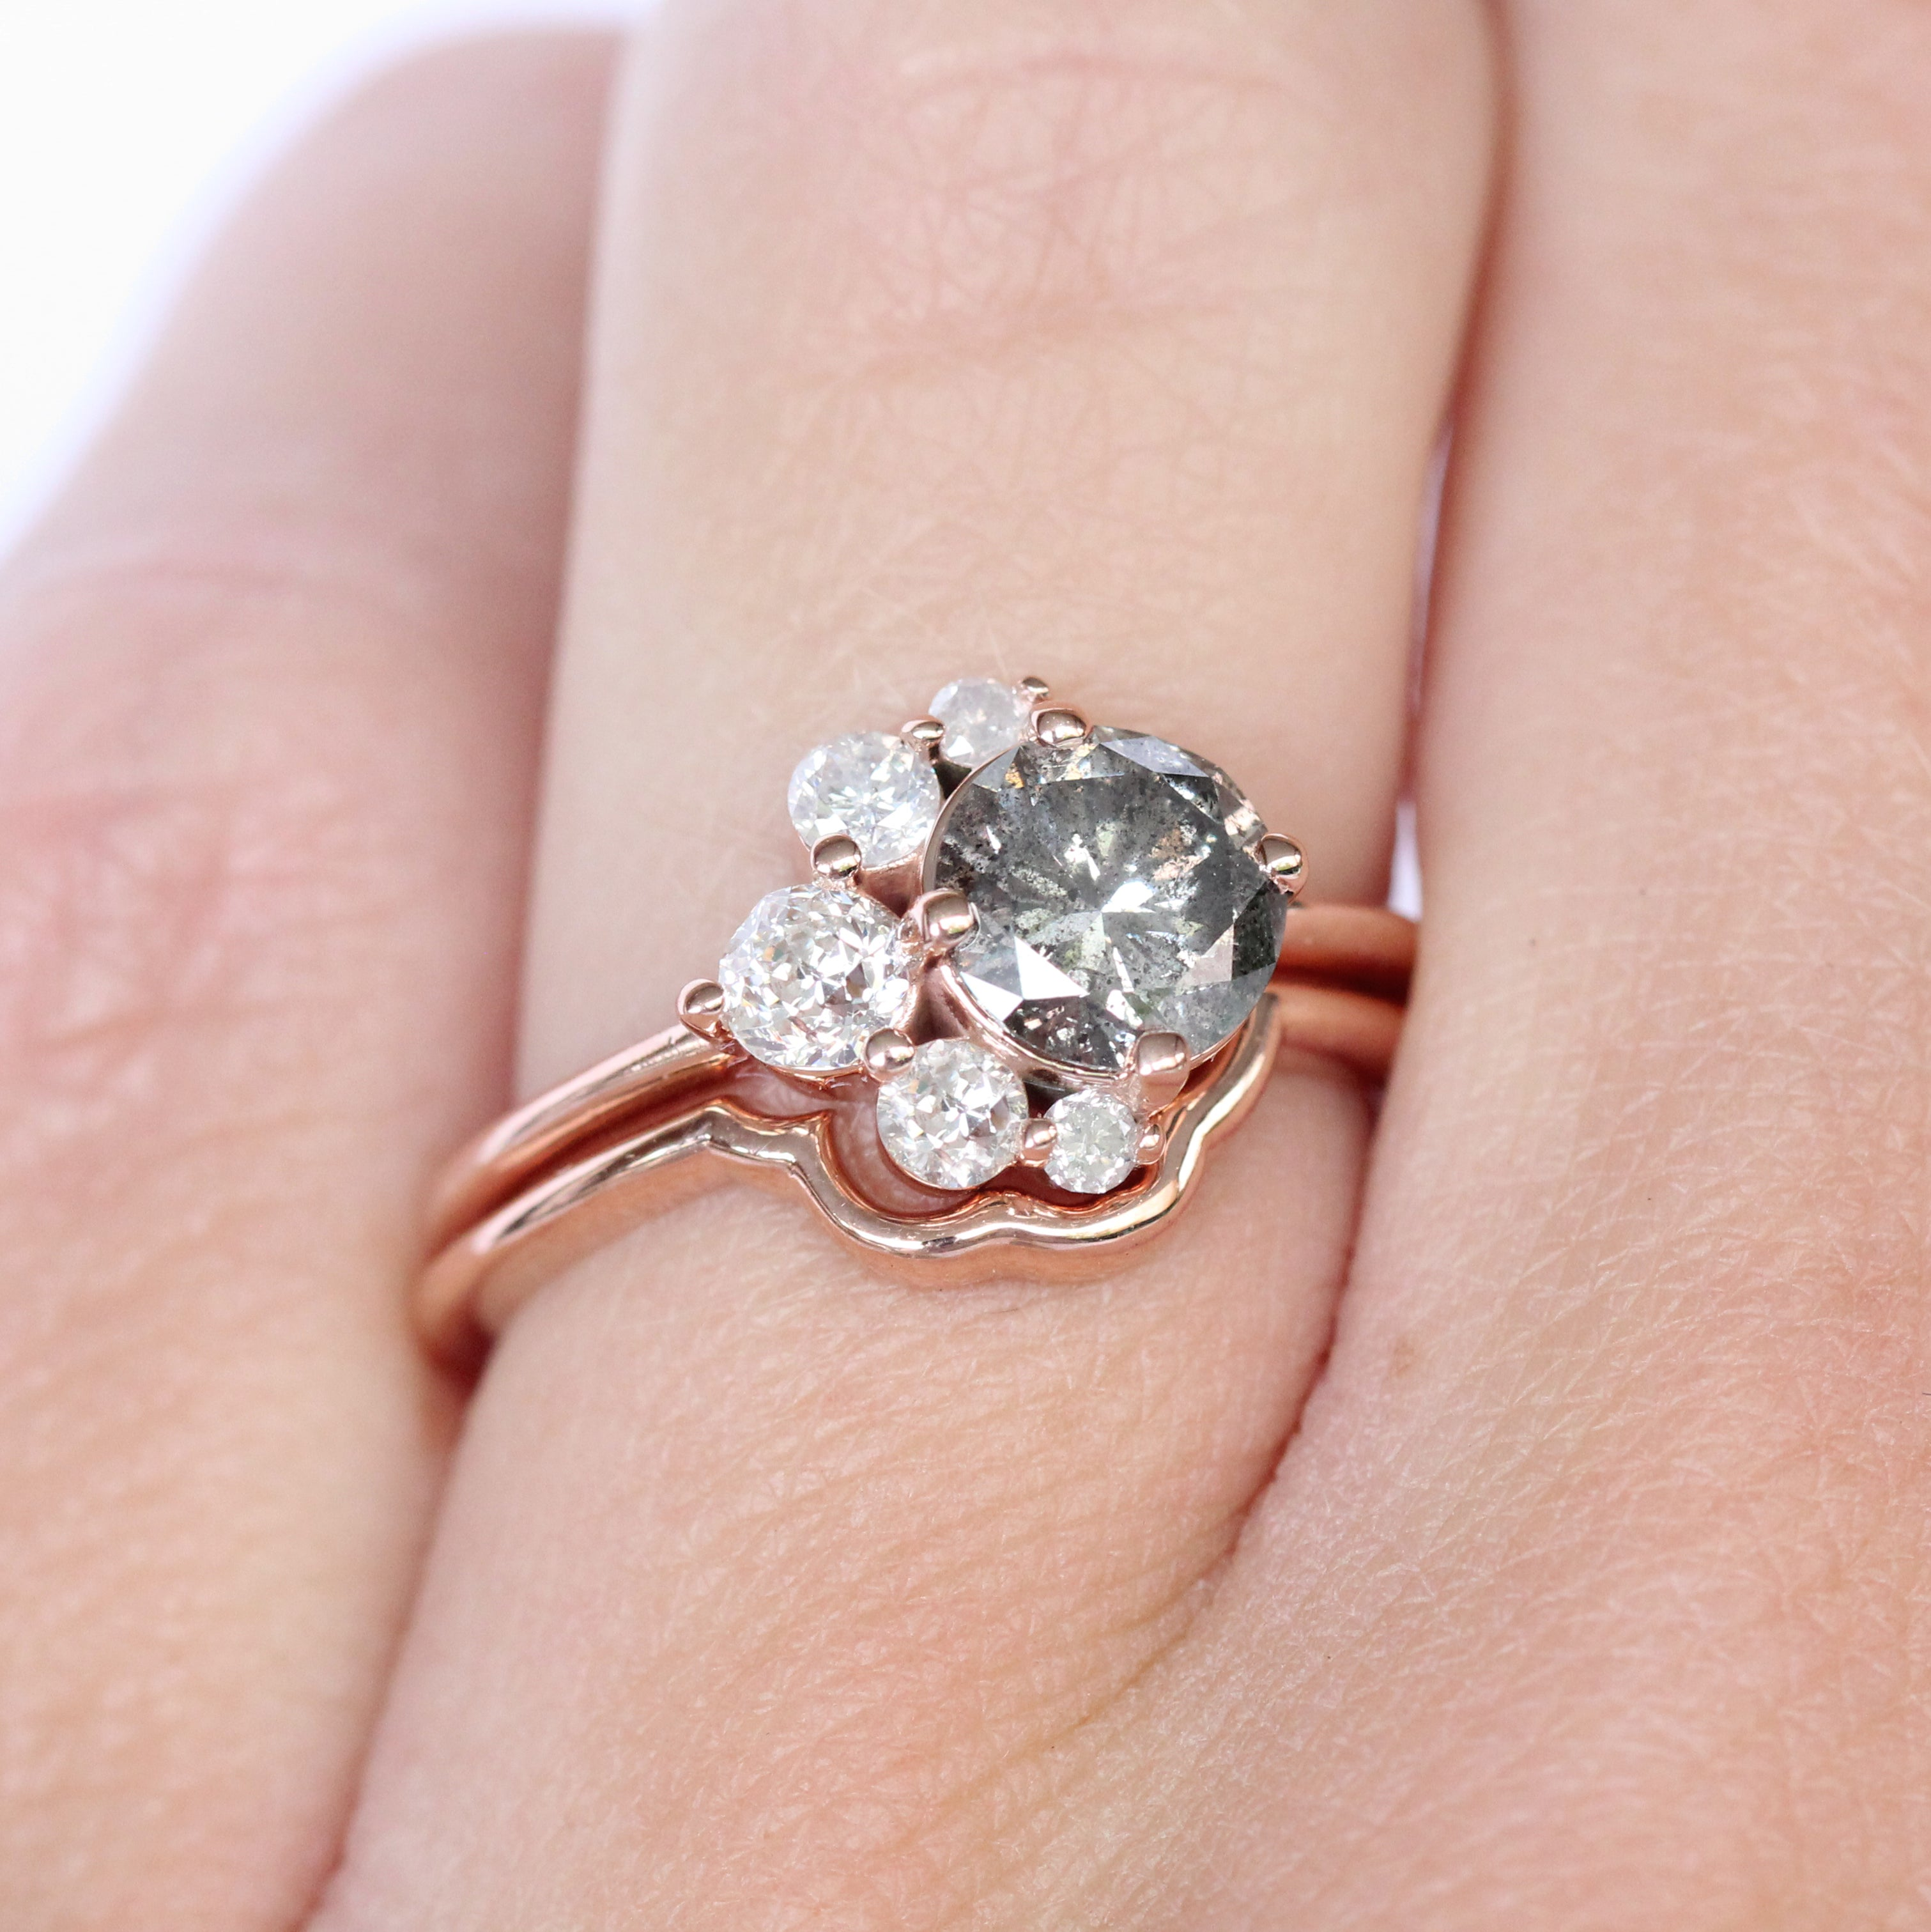 Carell Ring + Band with a 1.25 carat Celestial Diamond in 10k Rose Gold - Ready to Size and Ship - Celestial Diamonds ® by Midwinter Co.